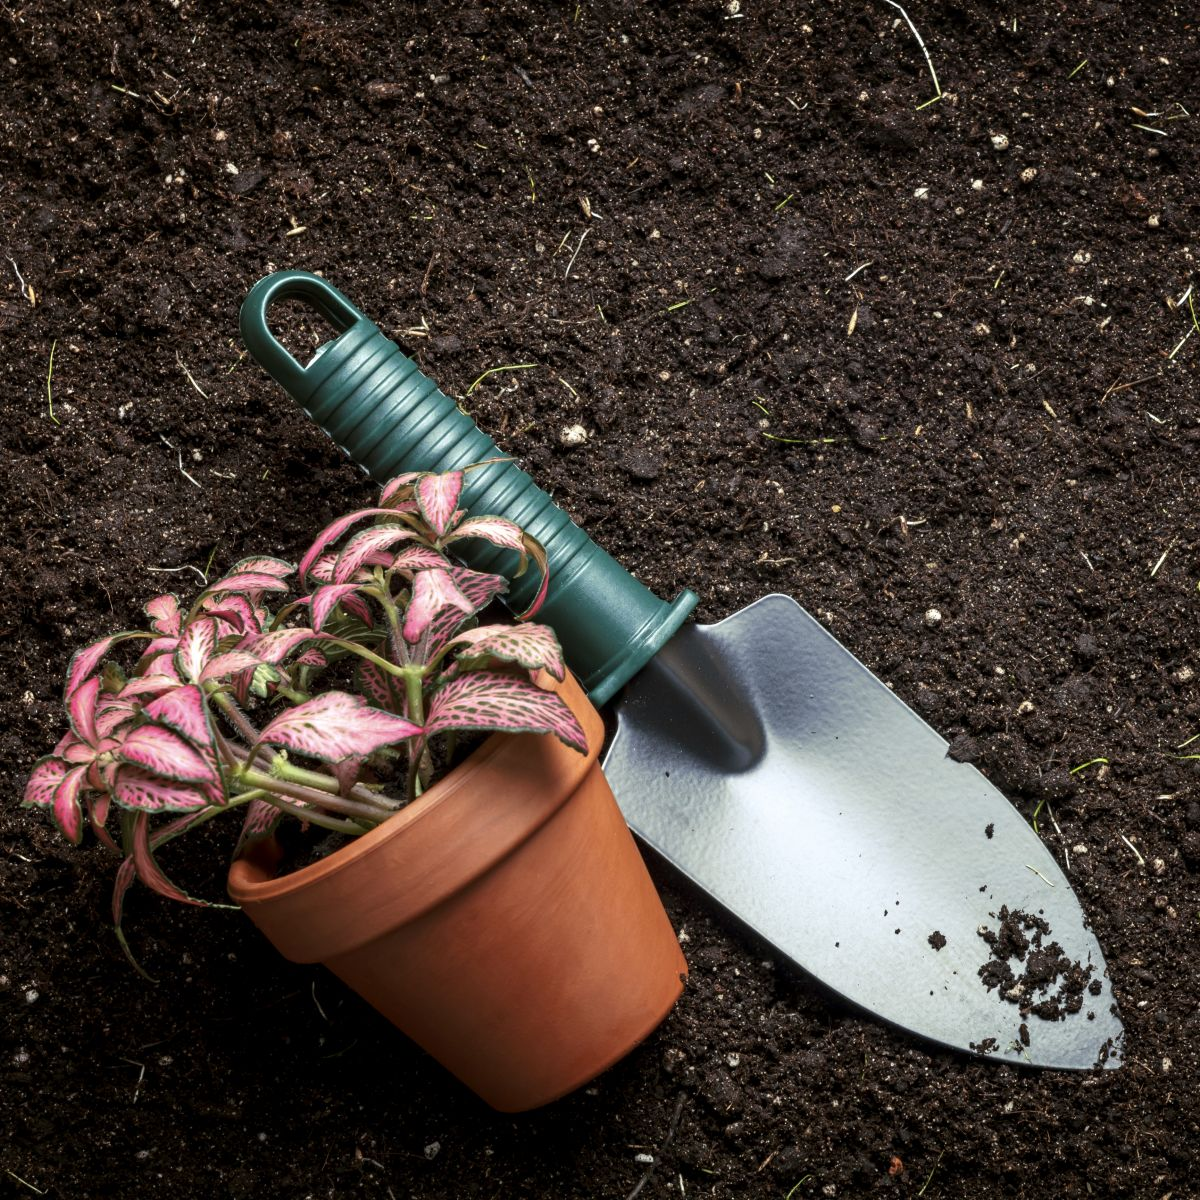 Hereford Garden Tools